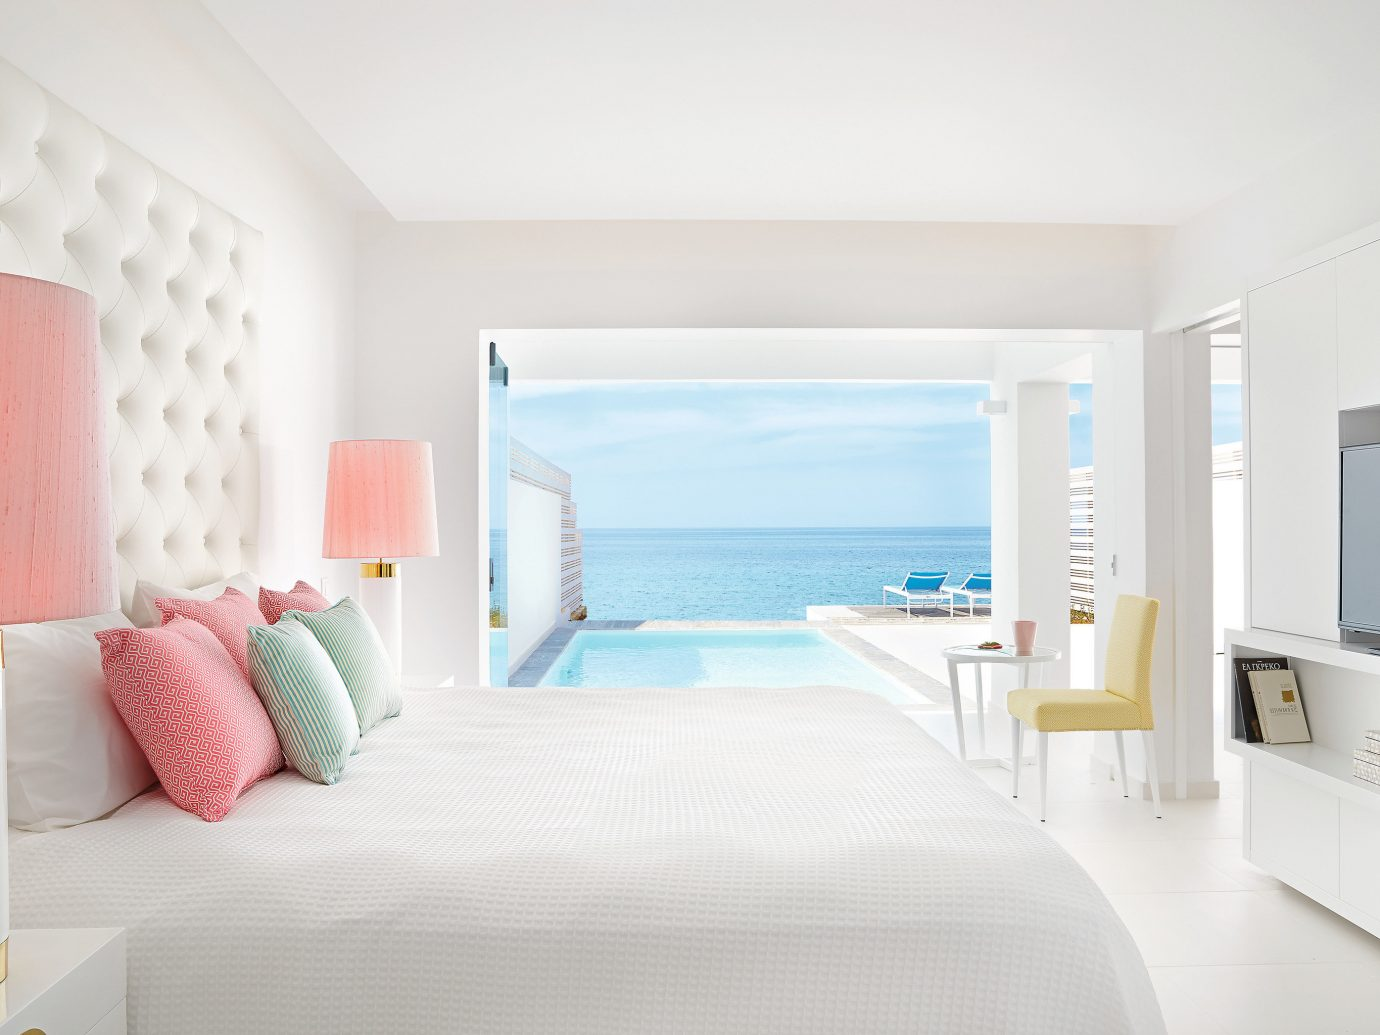 All-Inclusive Resorts Hotels indoor wall room Suite interior design ceiling Bedroom white home real estate hotel estate bed interior designer floor furniture decorated